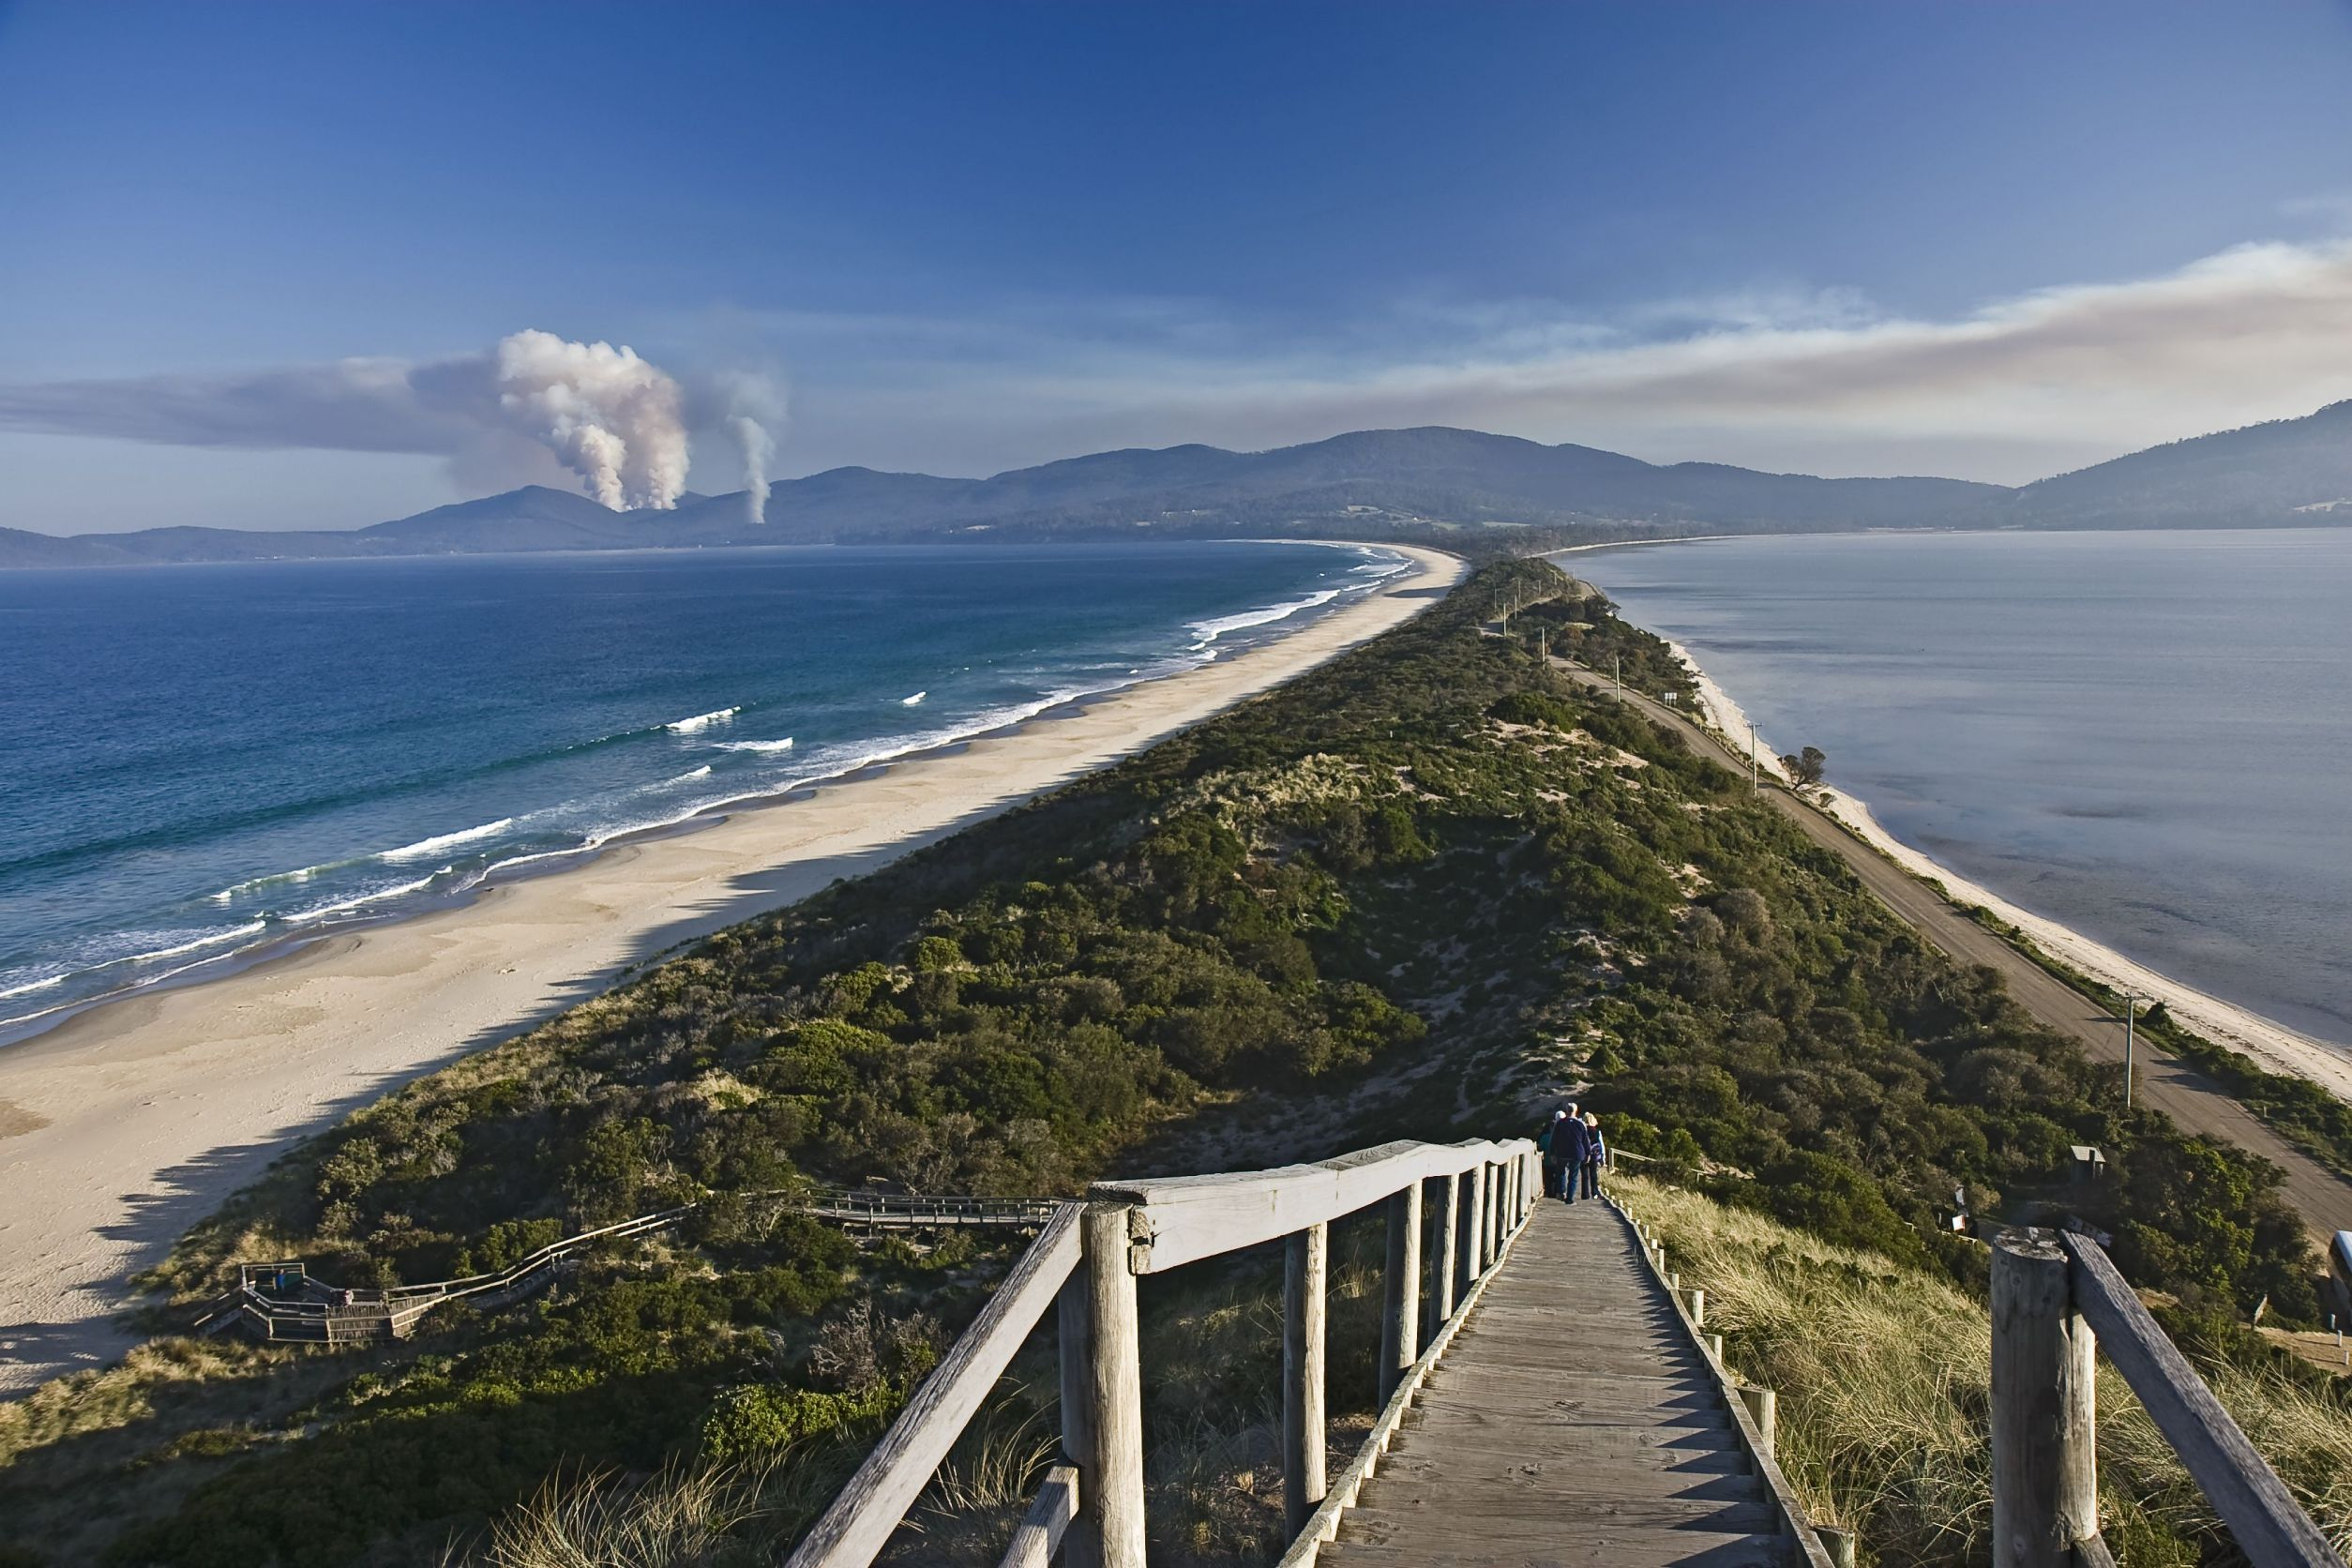 australia long beach tasmania 123rf